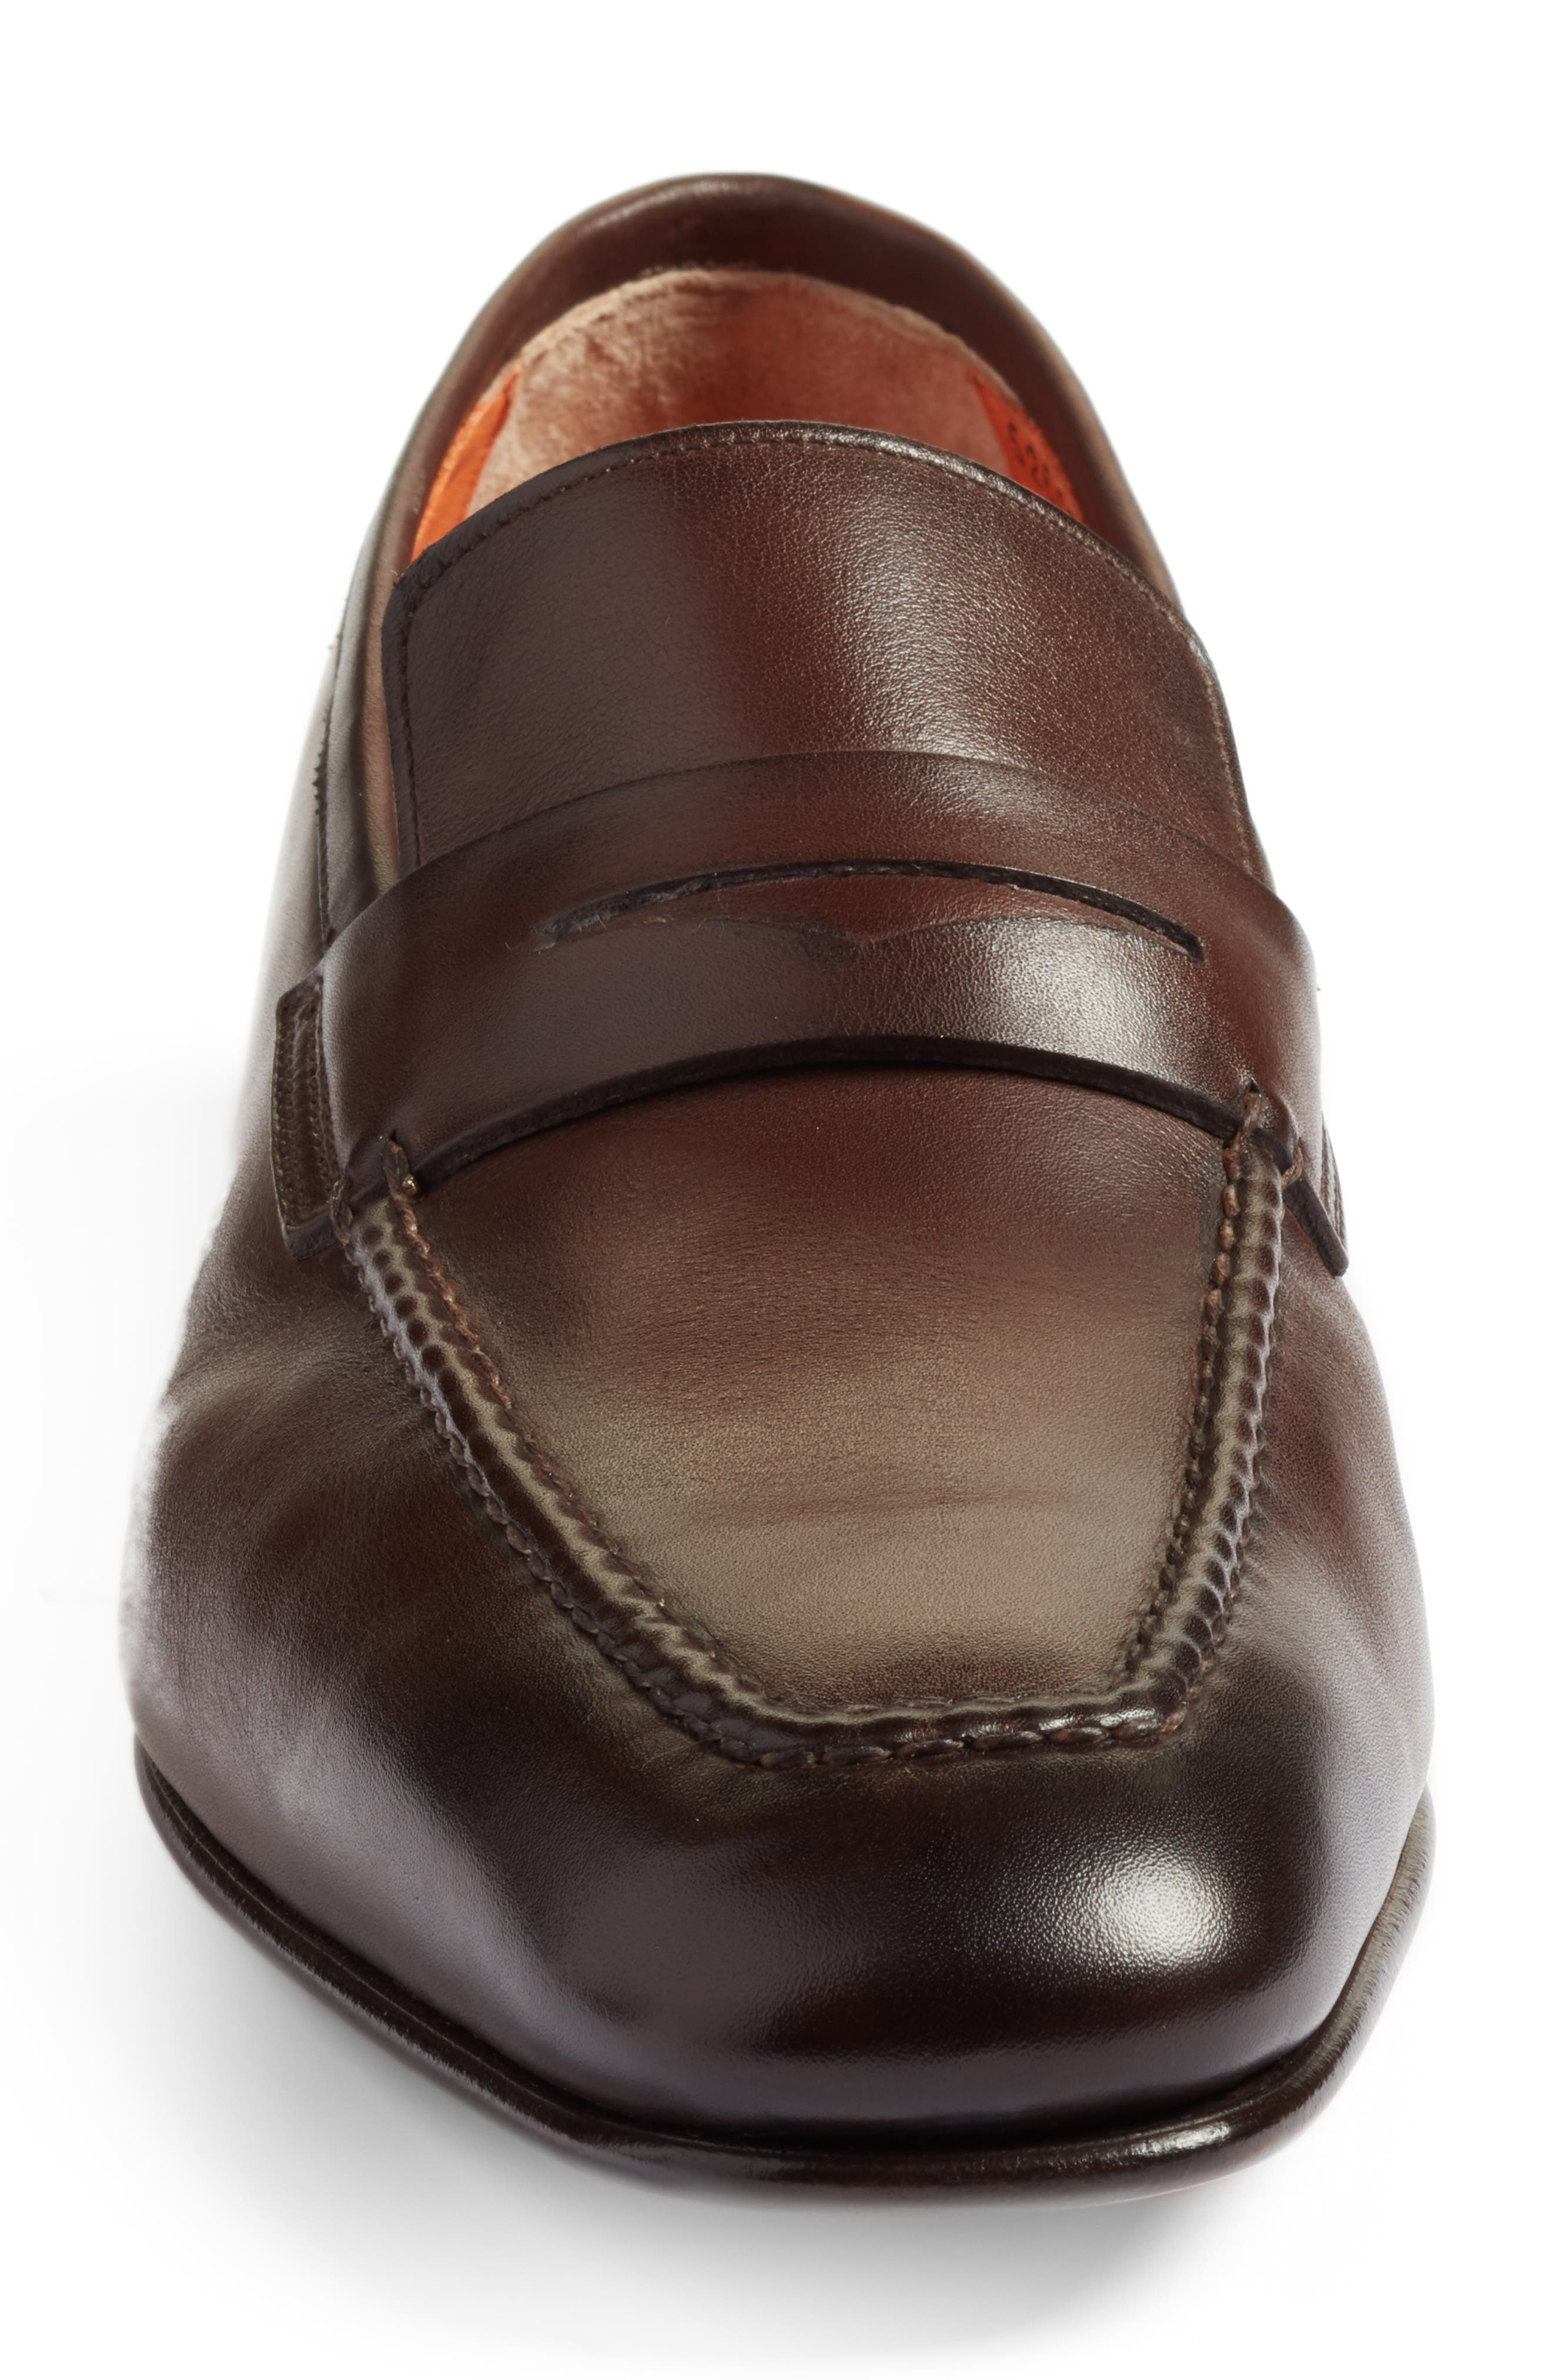 SANTONI, Fox Packable Penny Loafer, Alternate thumbnail 4, color, DARK BROWN LEATHER